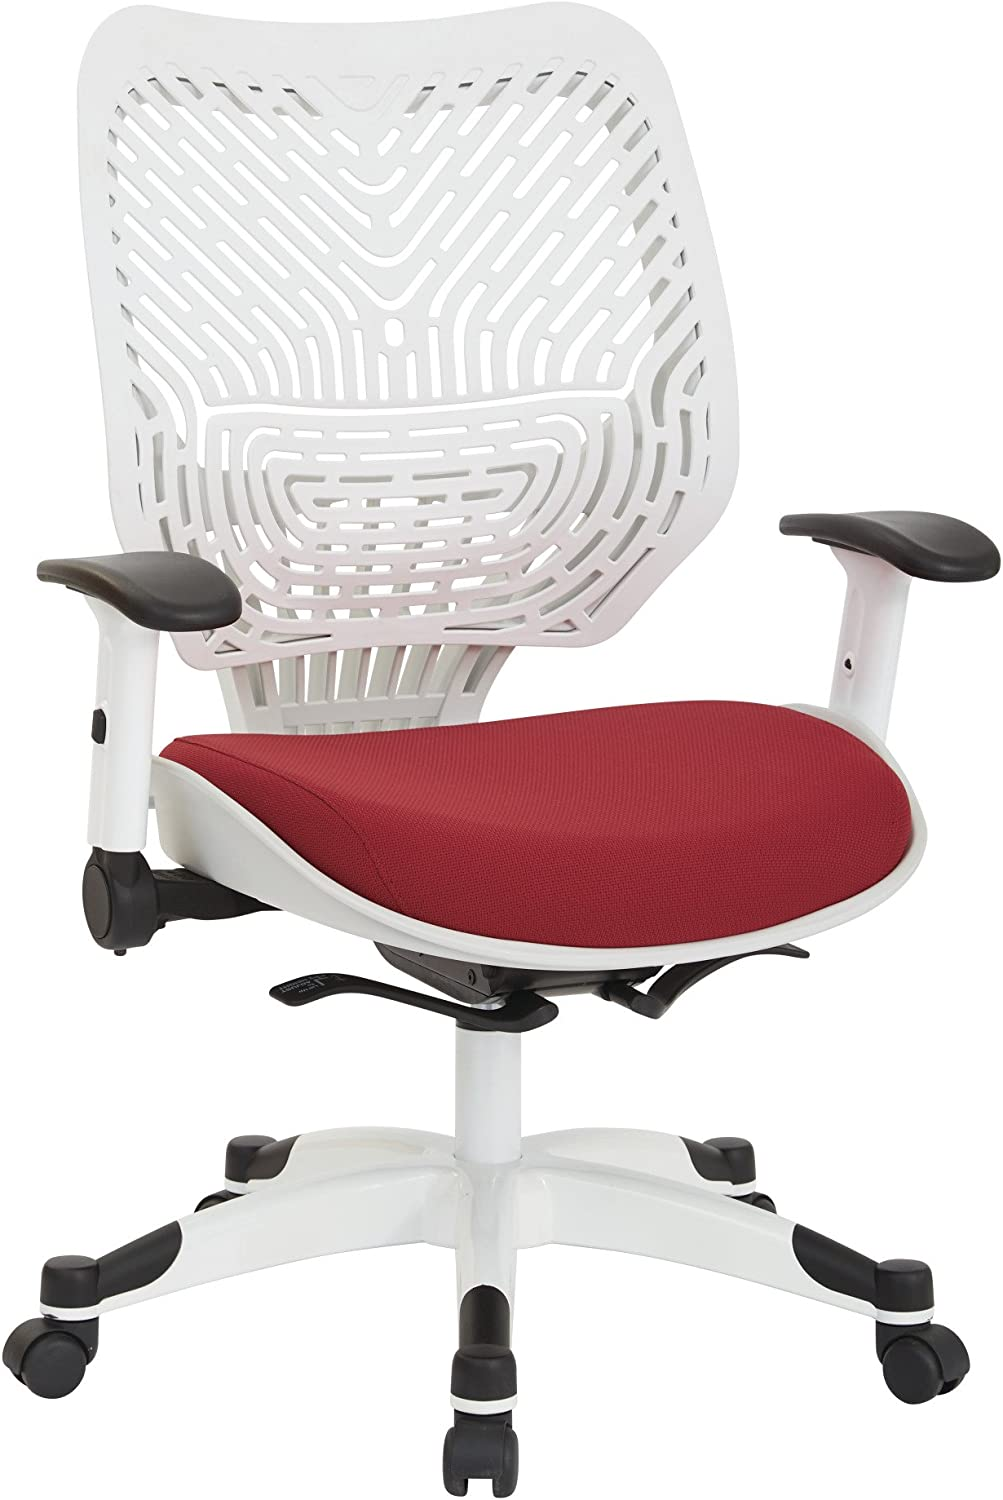 SPACE Seating Pulsar Self Adjusting SpaceFlex White Backrest Support and Padded Mesh Seat with Height Adjustable Flip Arms and Coated Nylon Base Managers Chair, Rouge